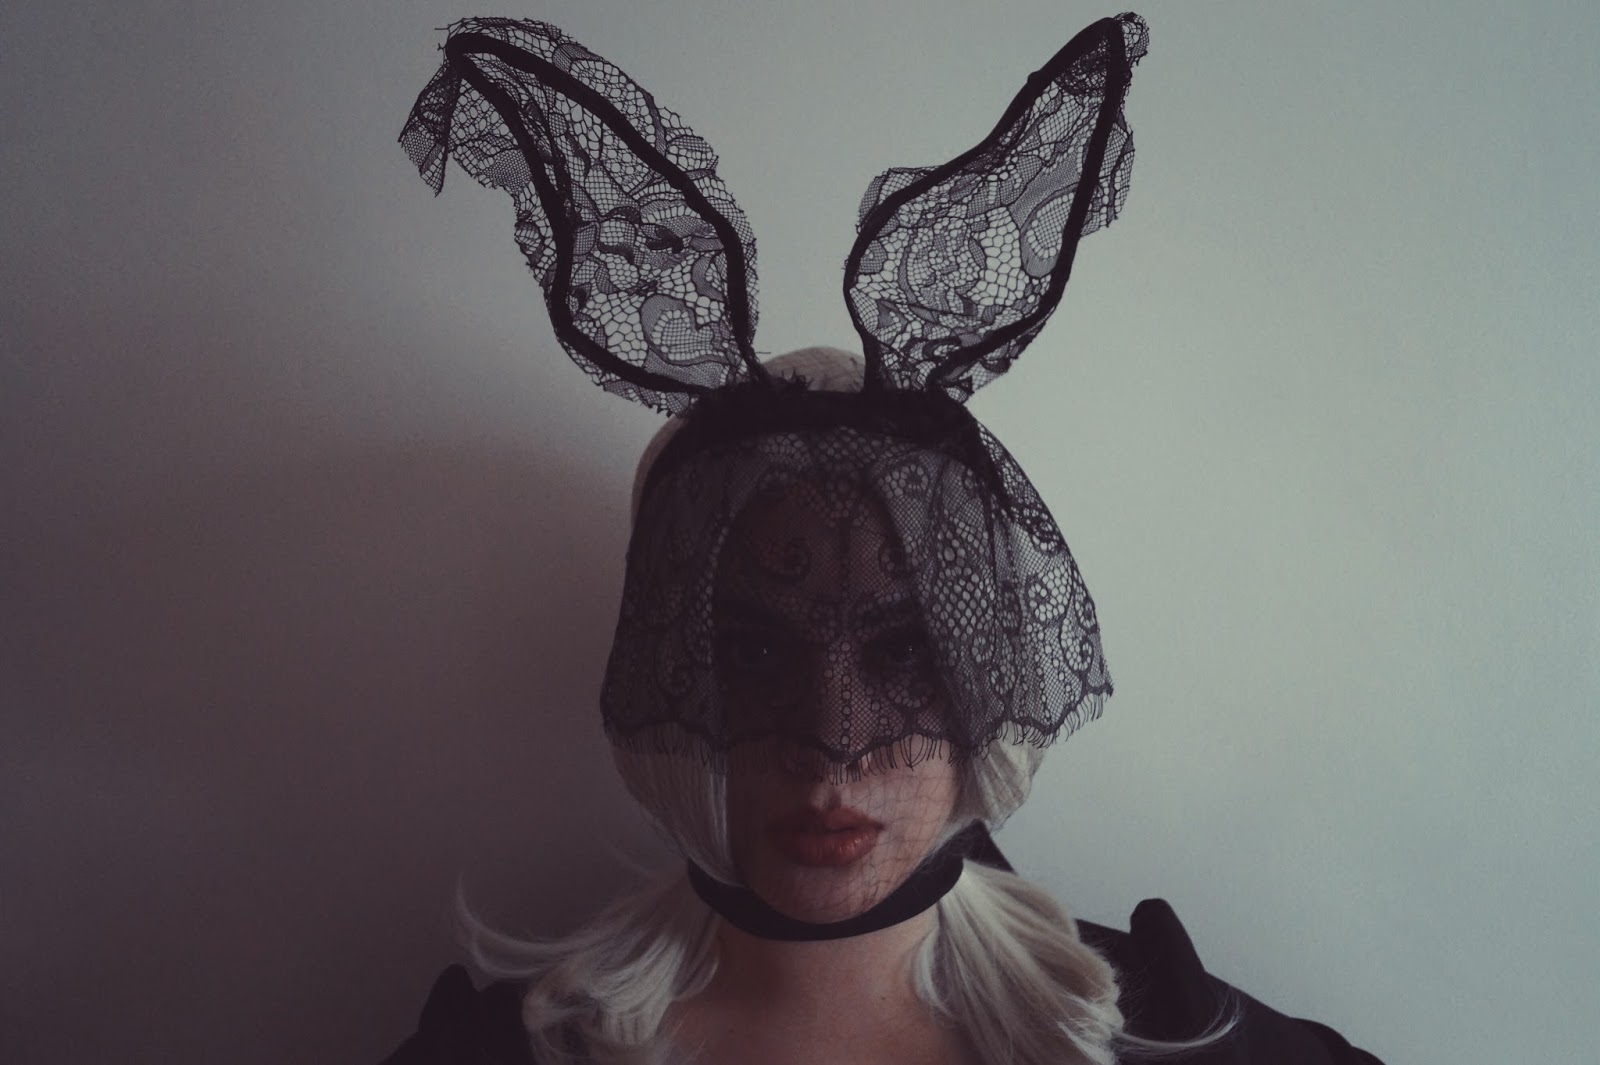 Ana Maddock- The Easter Bunny- Maison Michel, Fever Collection 'Sophia' Wig, Kylie Cosmetics 'Posie K' lip kit